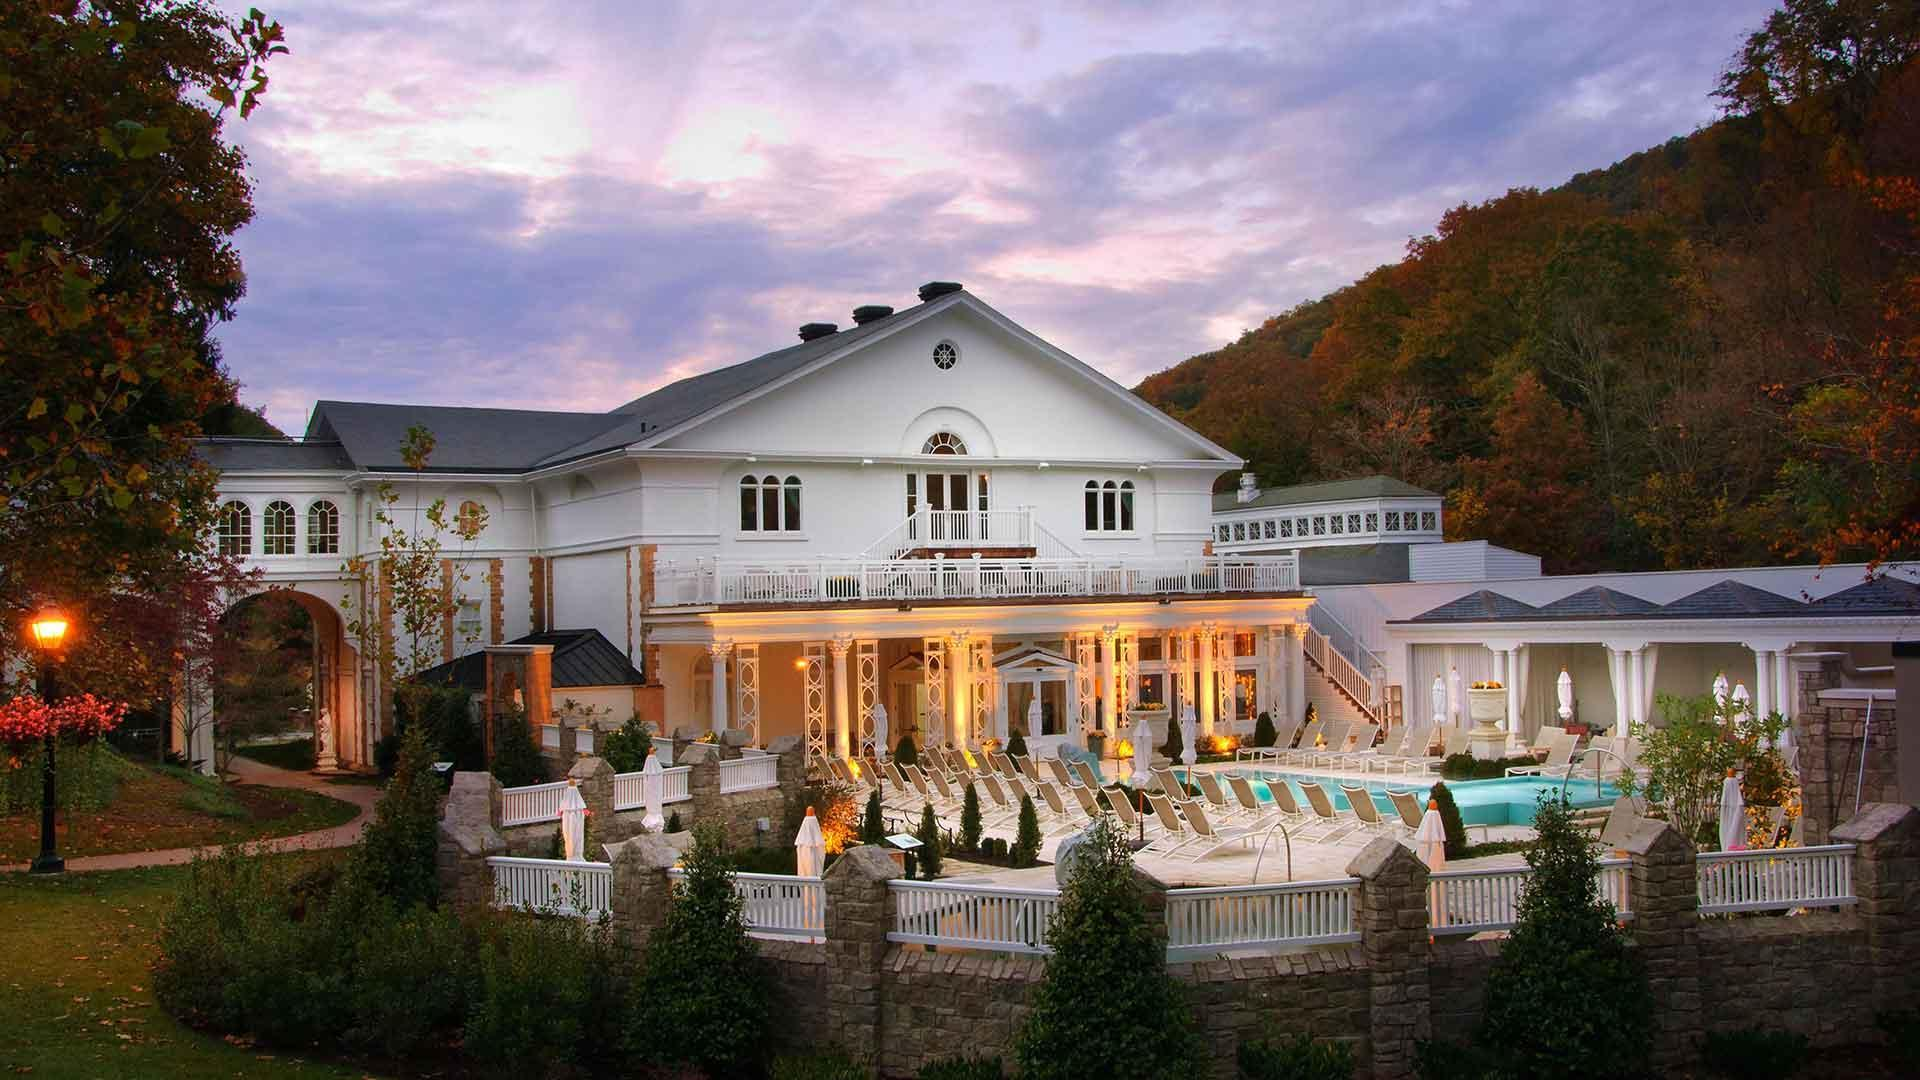 TheOmniHomesteadResort_spa — — 外观 — — 晚